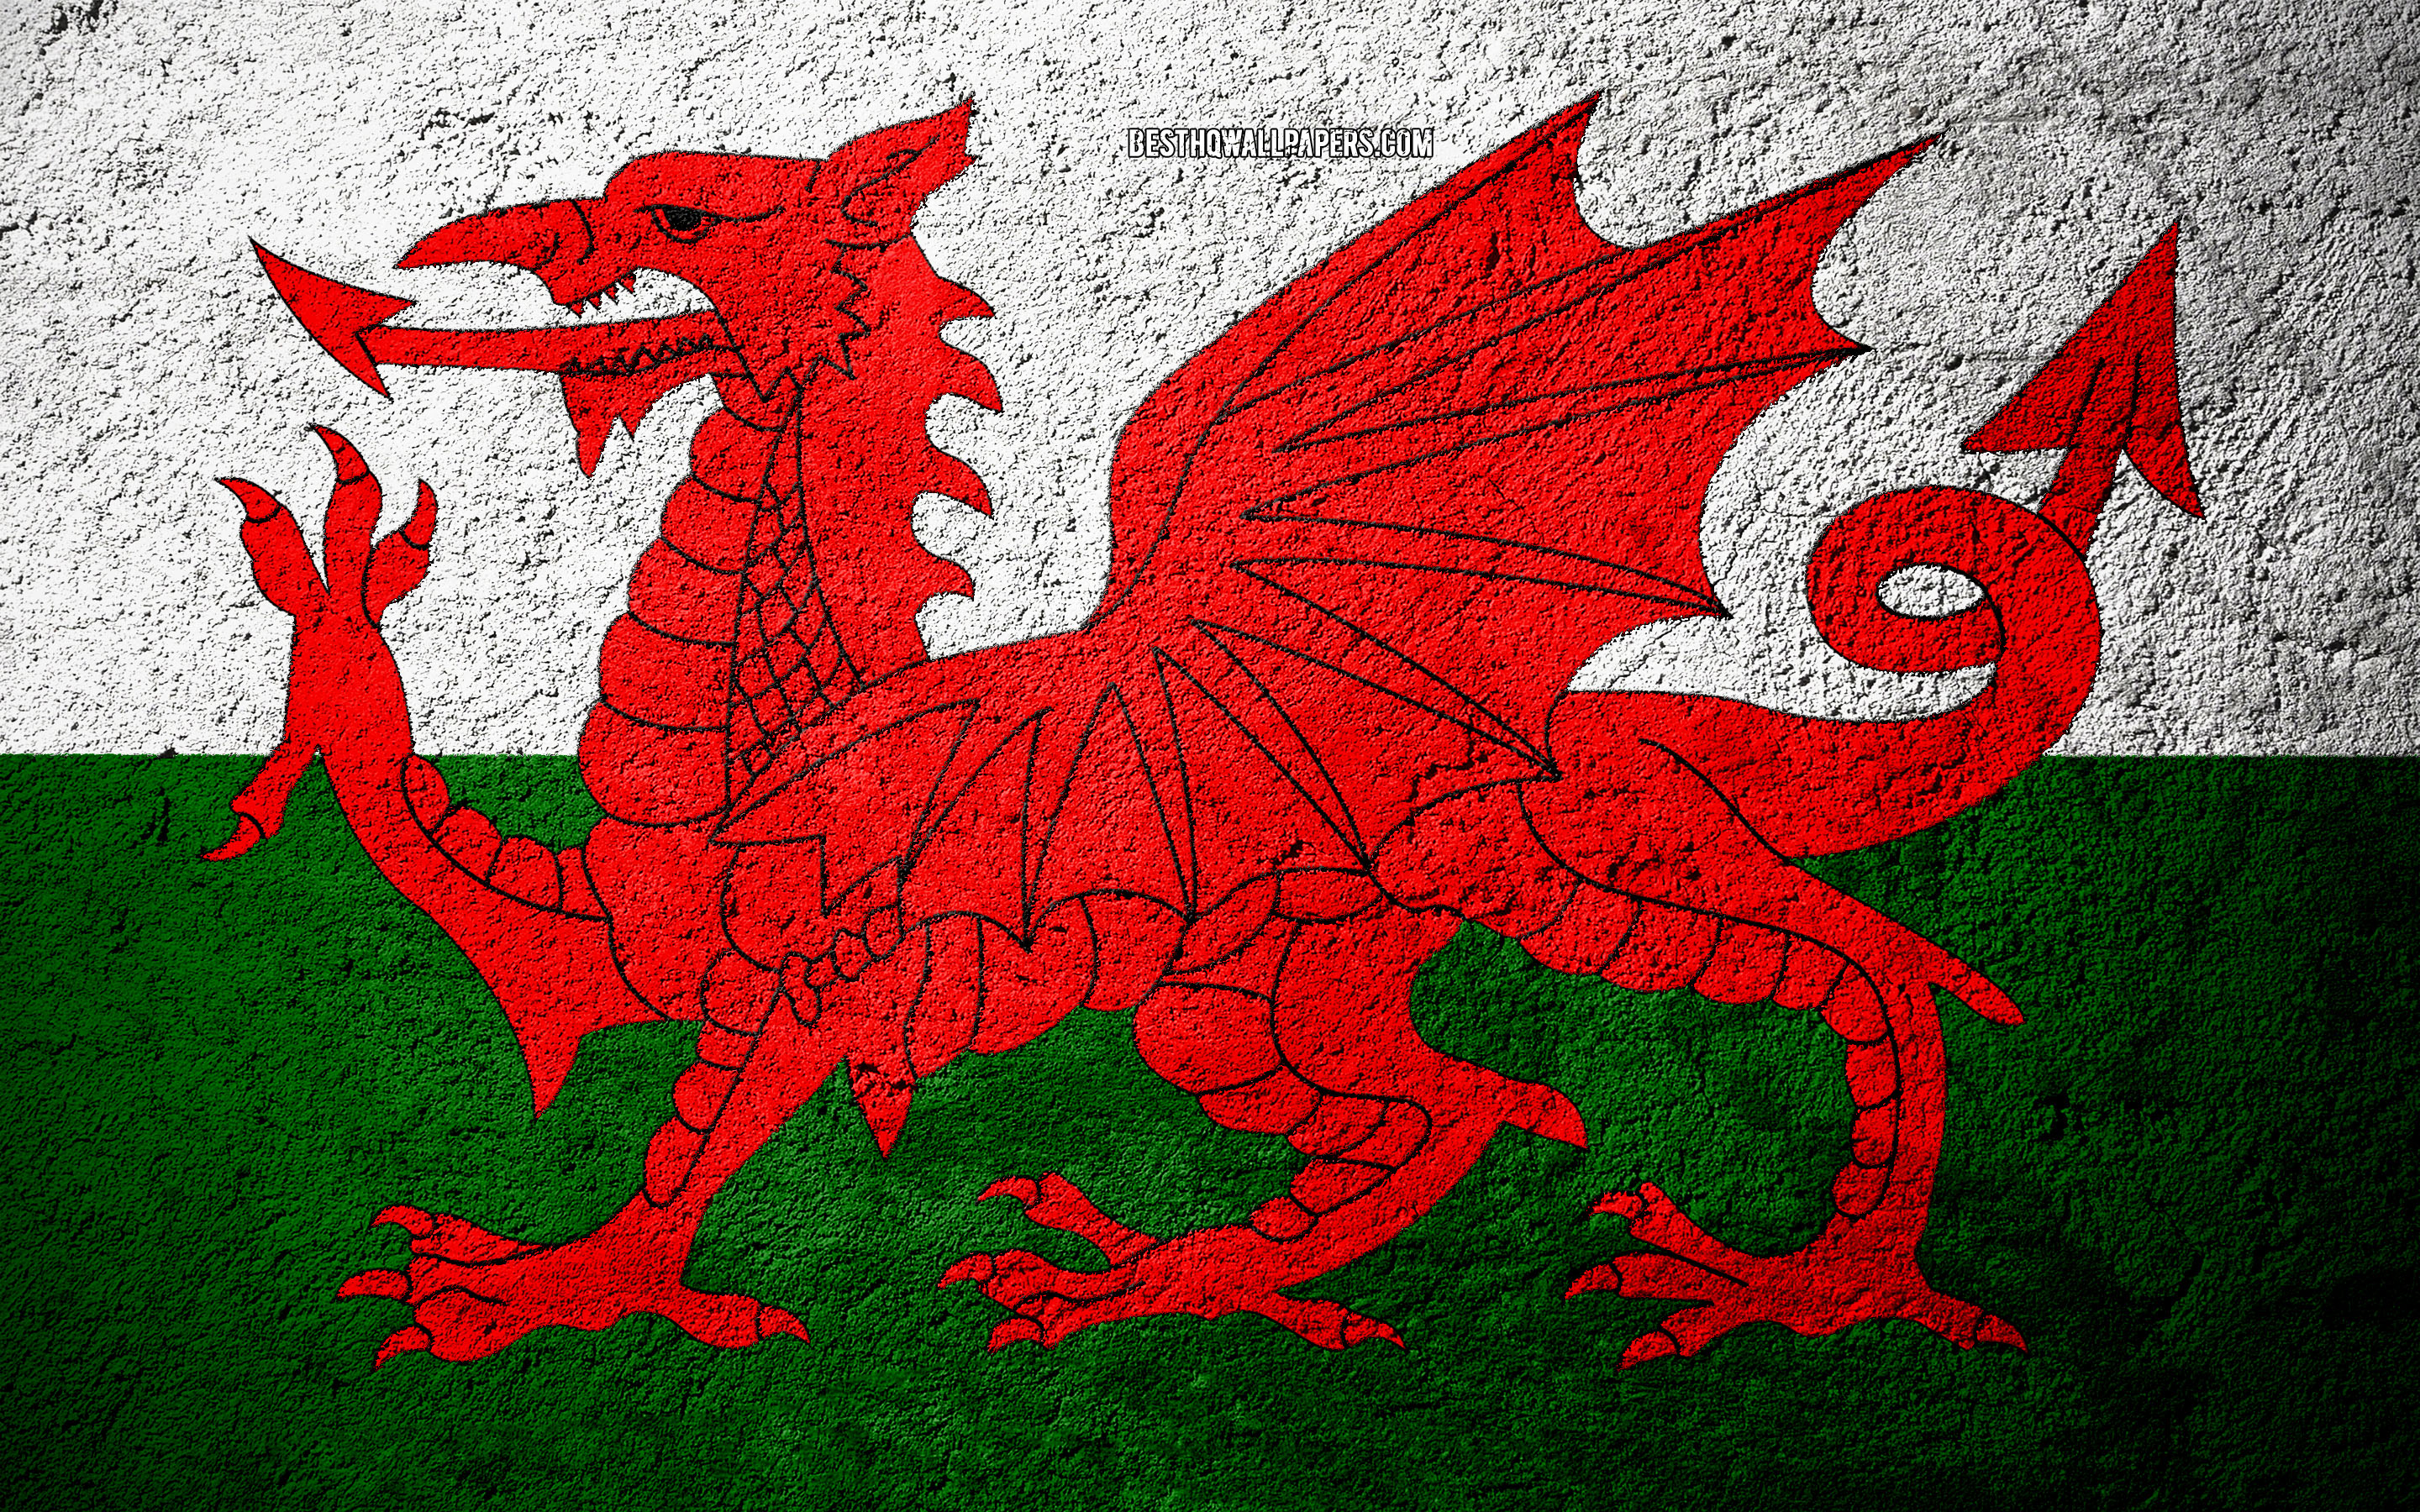 Download wallpapers Flag of Wales concrete texture stone 2880x1800